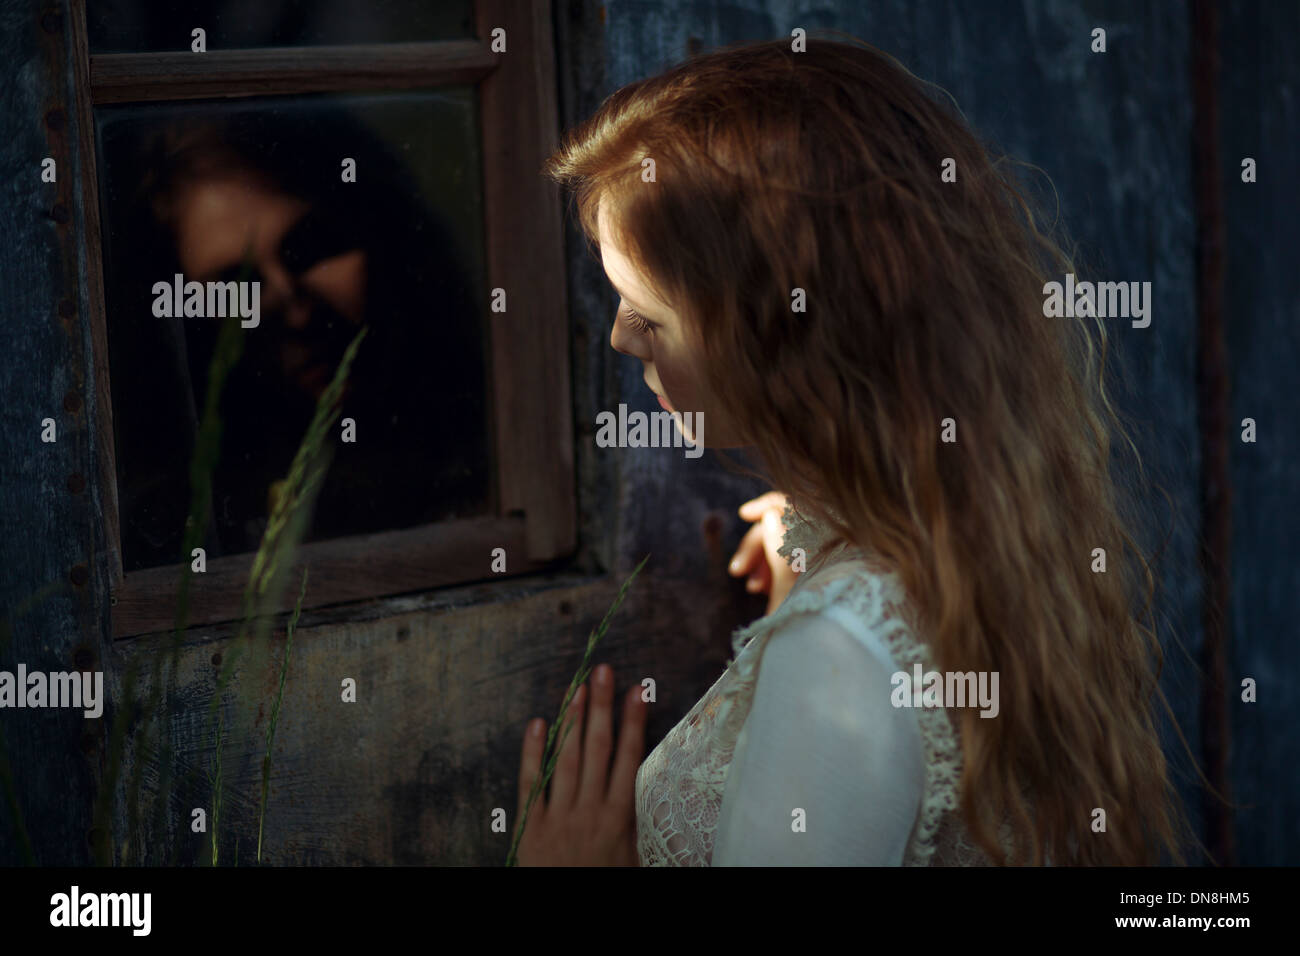 Young woman with reflection in window - Stock Image